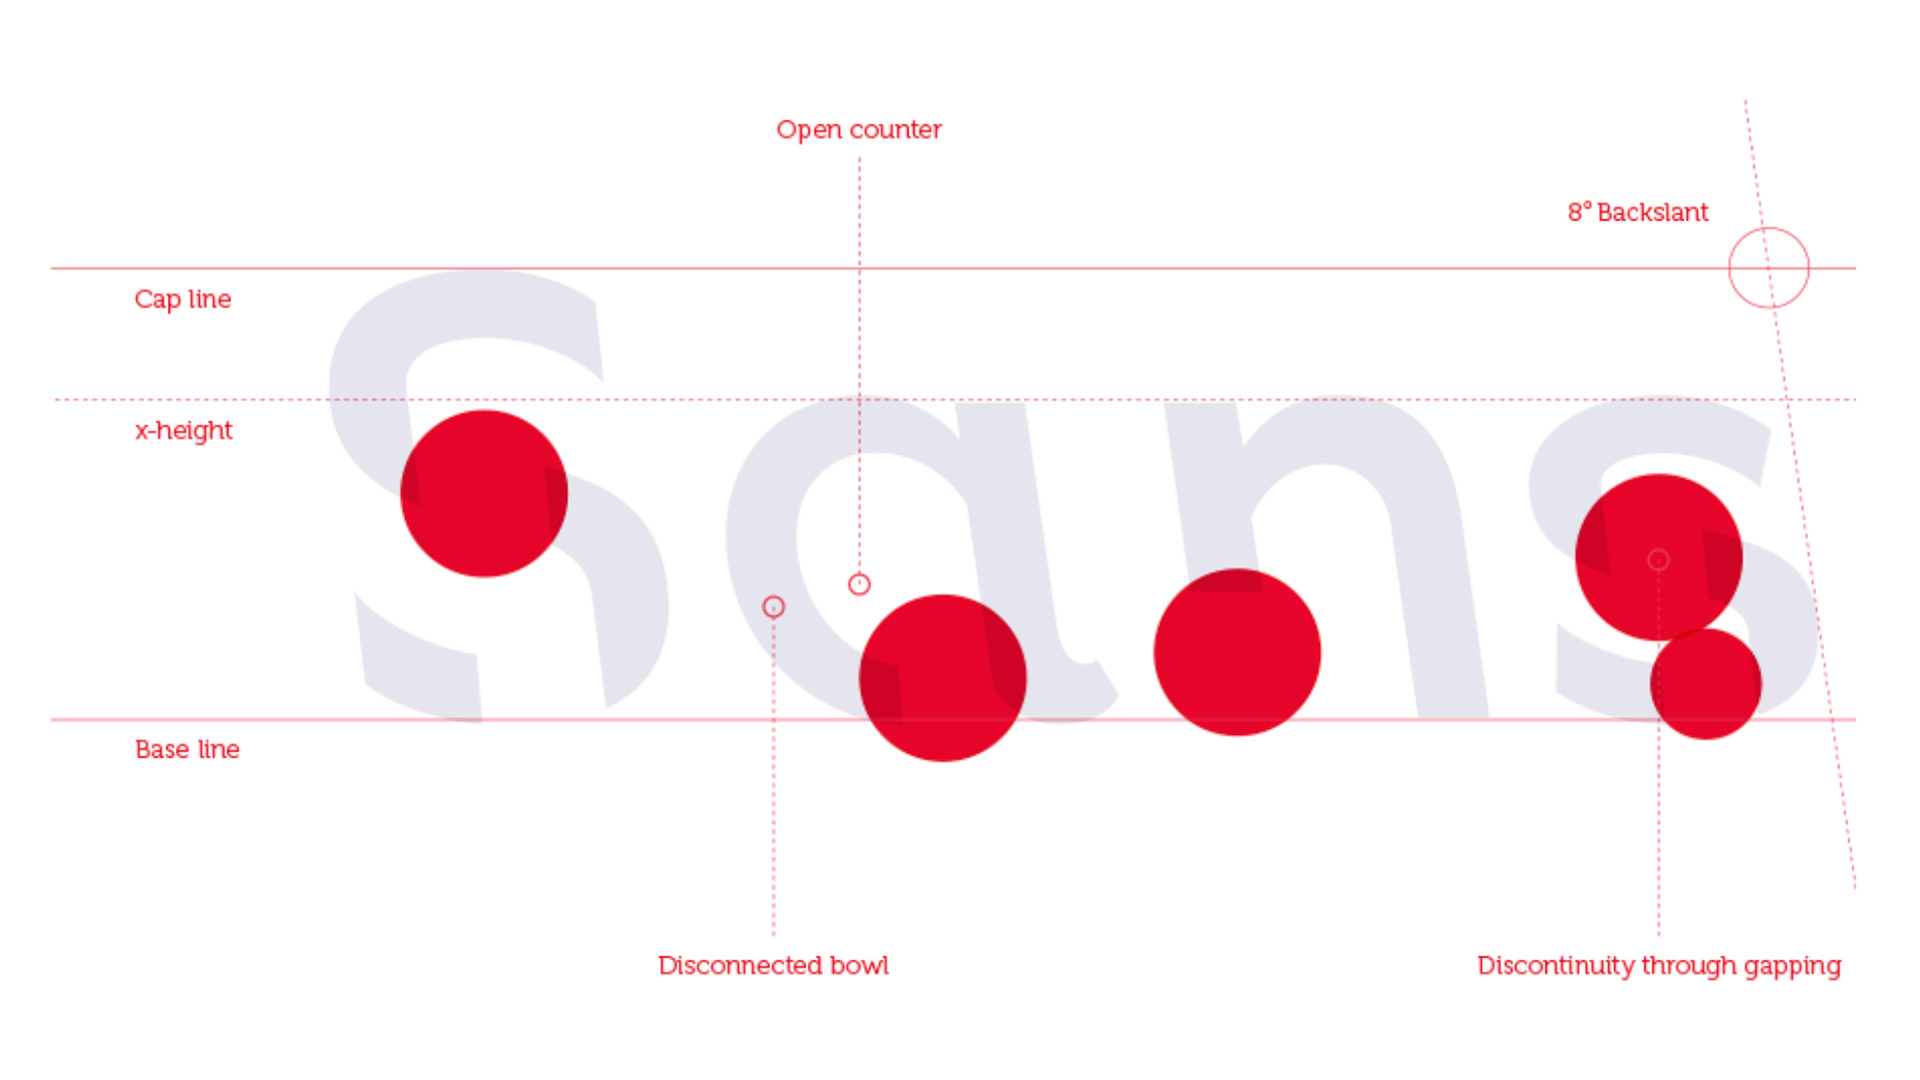 How it works - The font works by utilising a principle known as 'desirable difficulty', whereby uncommon design elements in the font's design slow the reading process, activating deeper cognitive engagement.